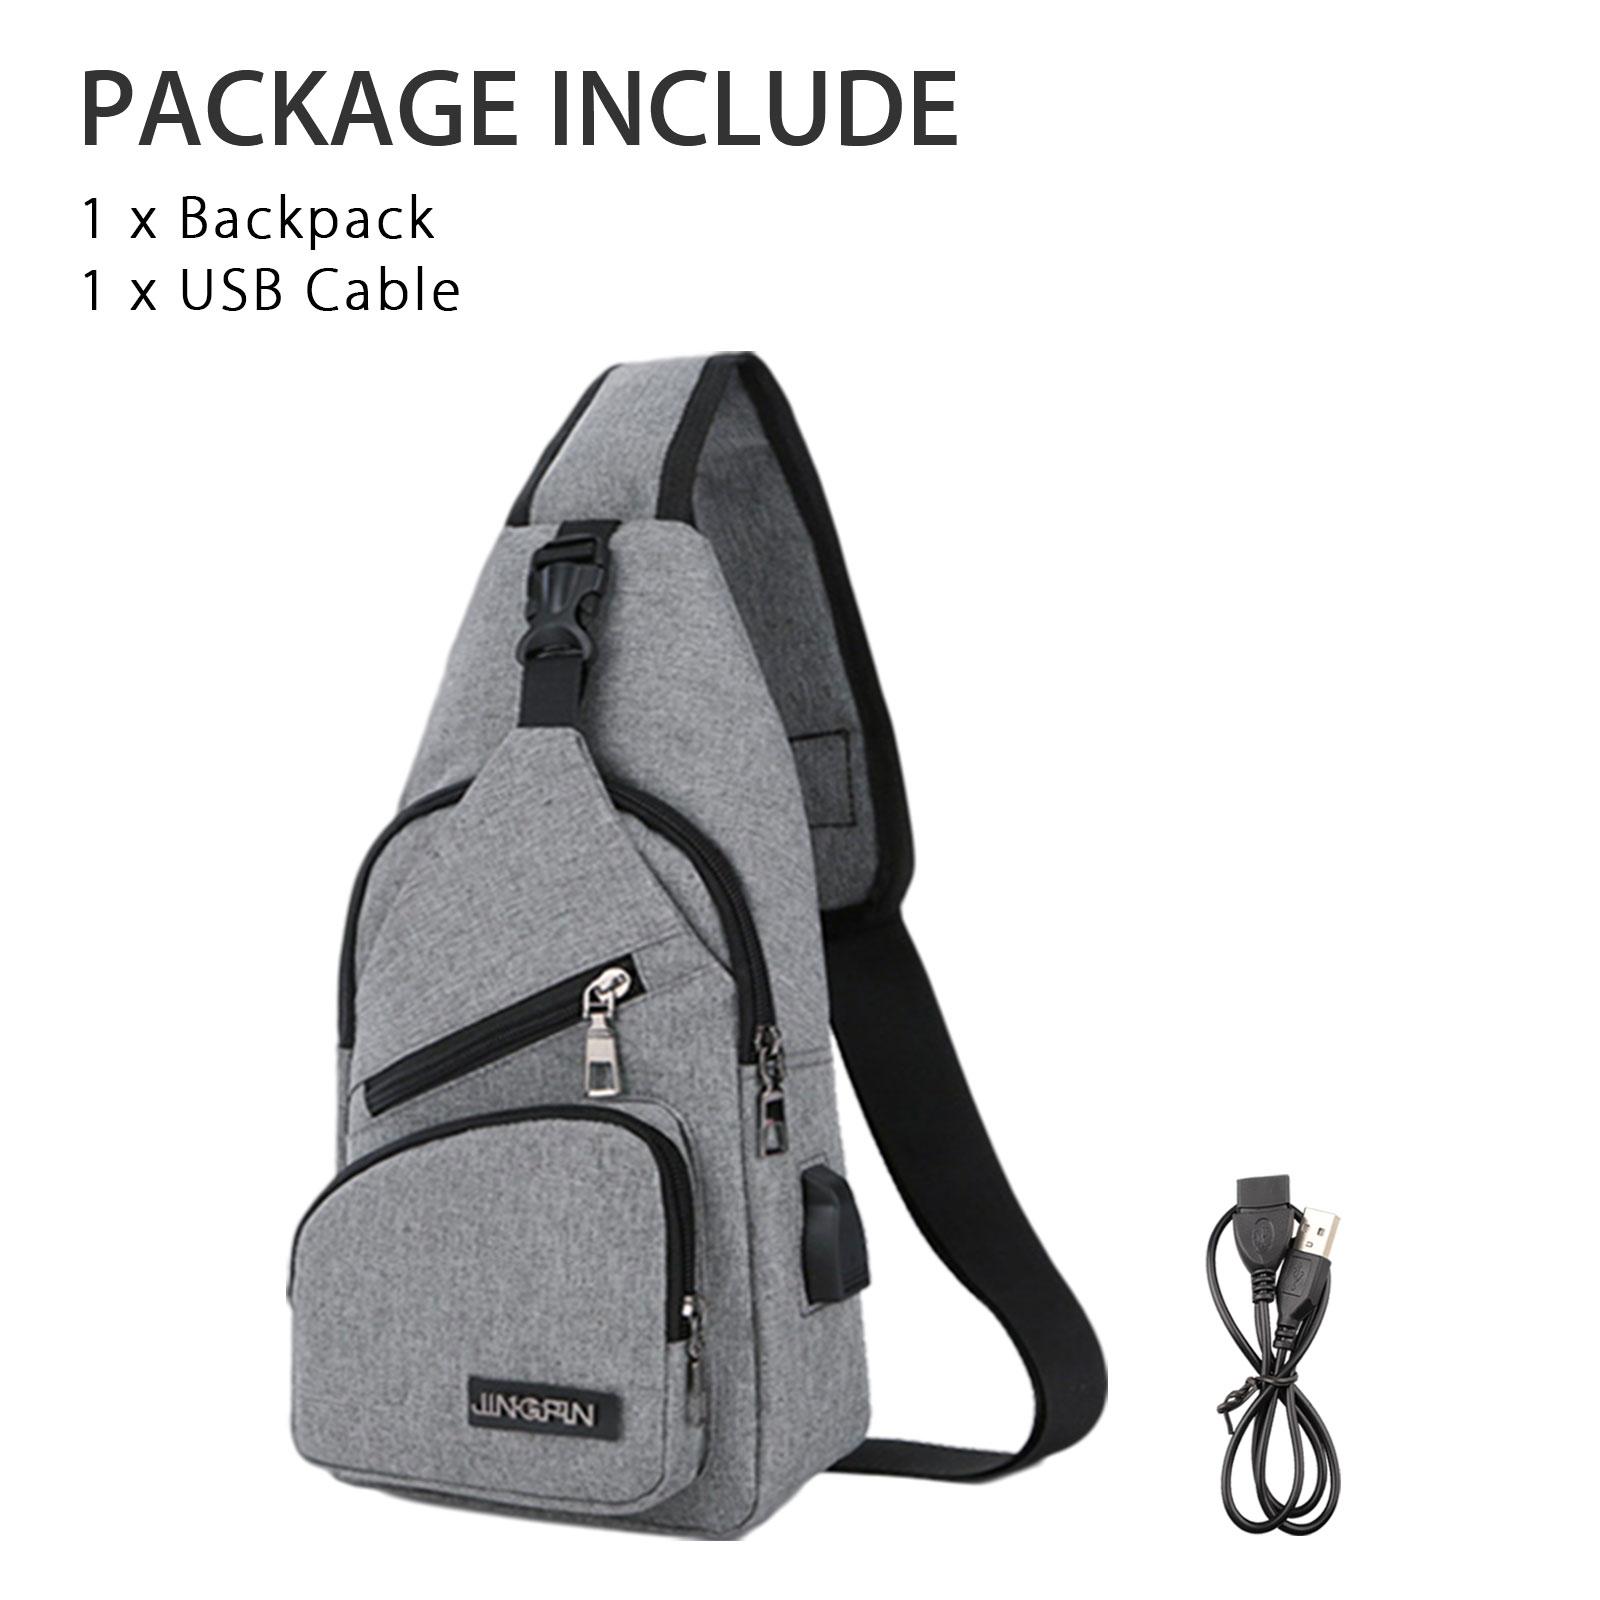 Backpack-Crossbody-Travel-Bag-For-Nintendo-Switch-Console-Joy-Cons-Accessories thumbnail 9